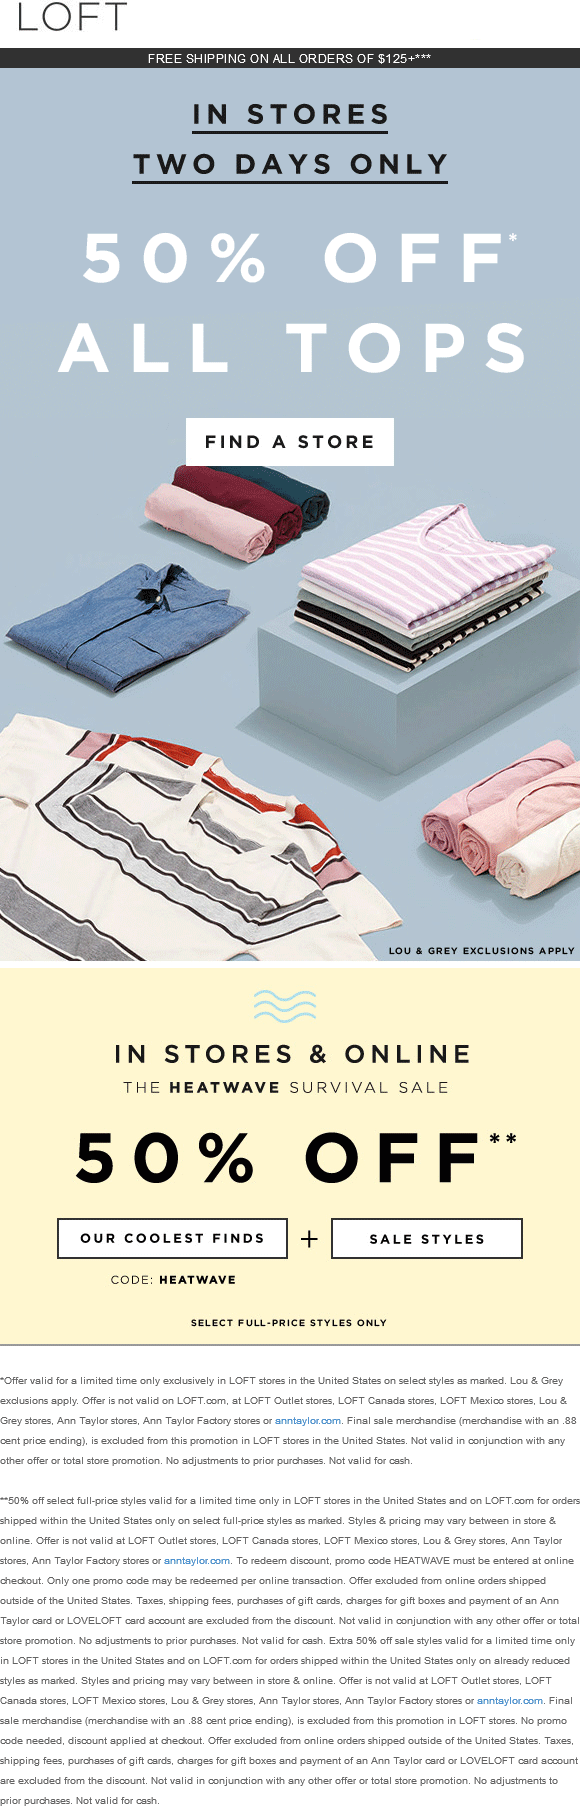 LOFT Coupon September 2018 50% off tops & sale items at LOFT, or online via promo code HEATWAVE